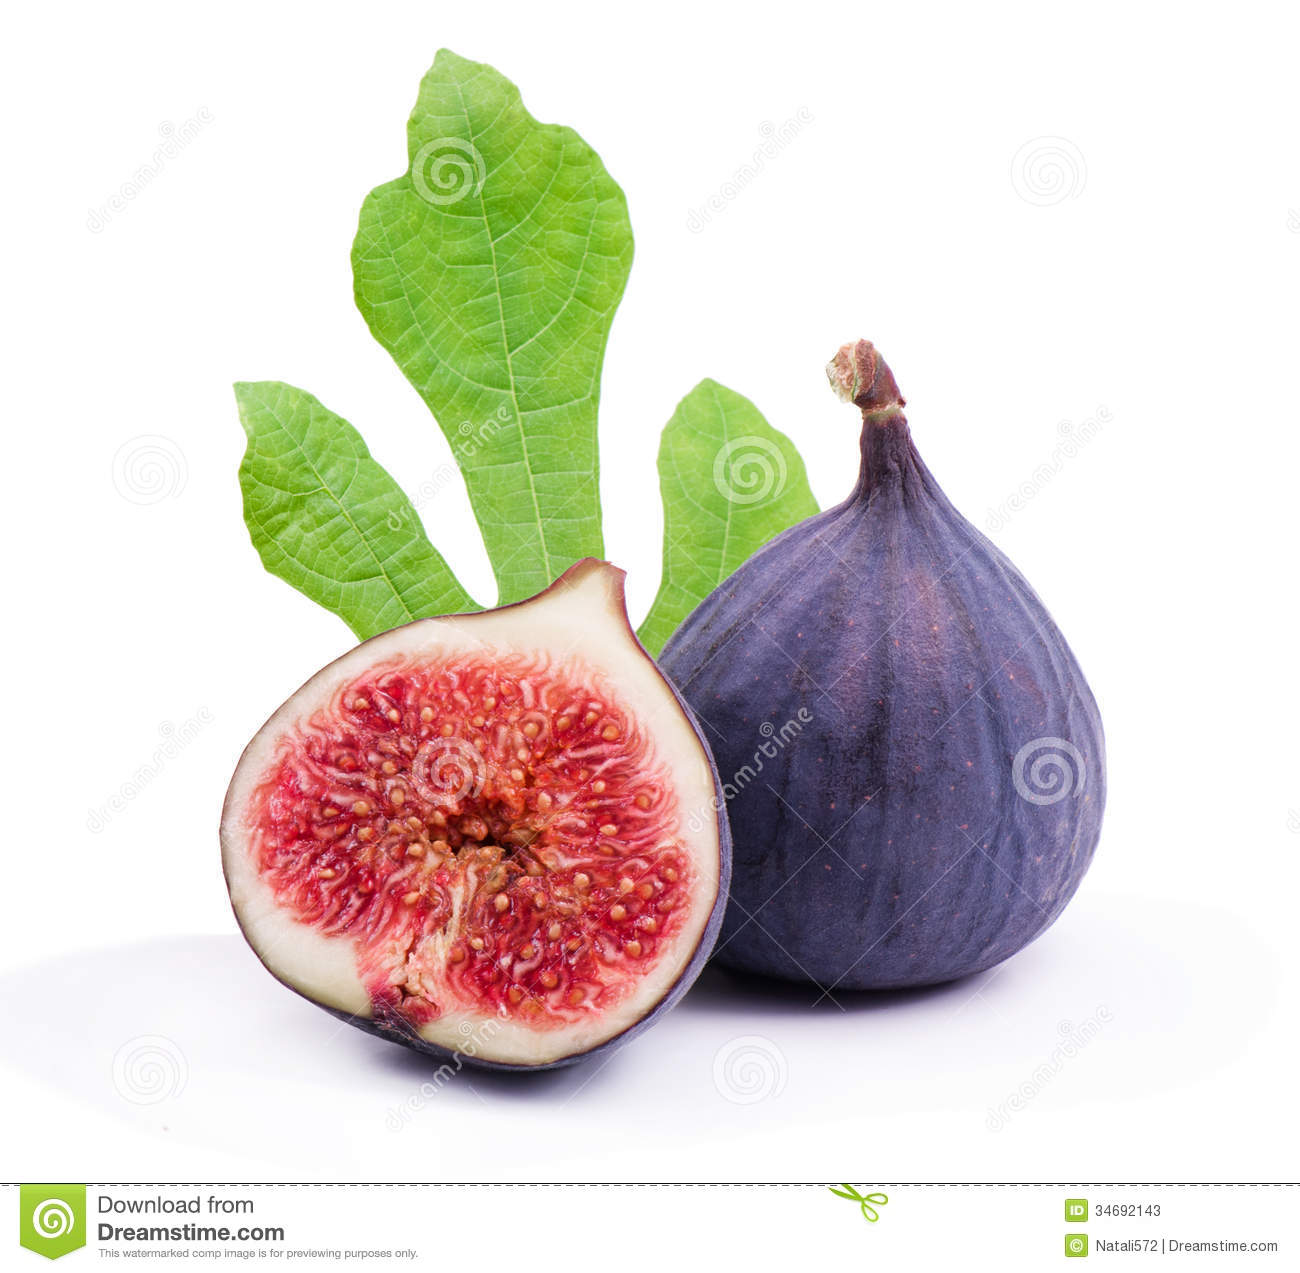 how to produce more figs